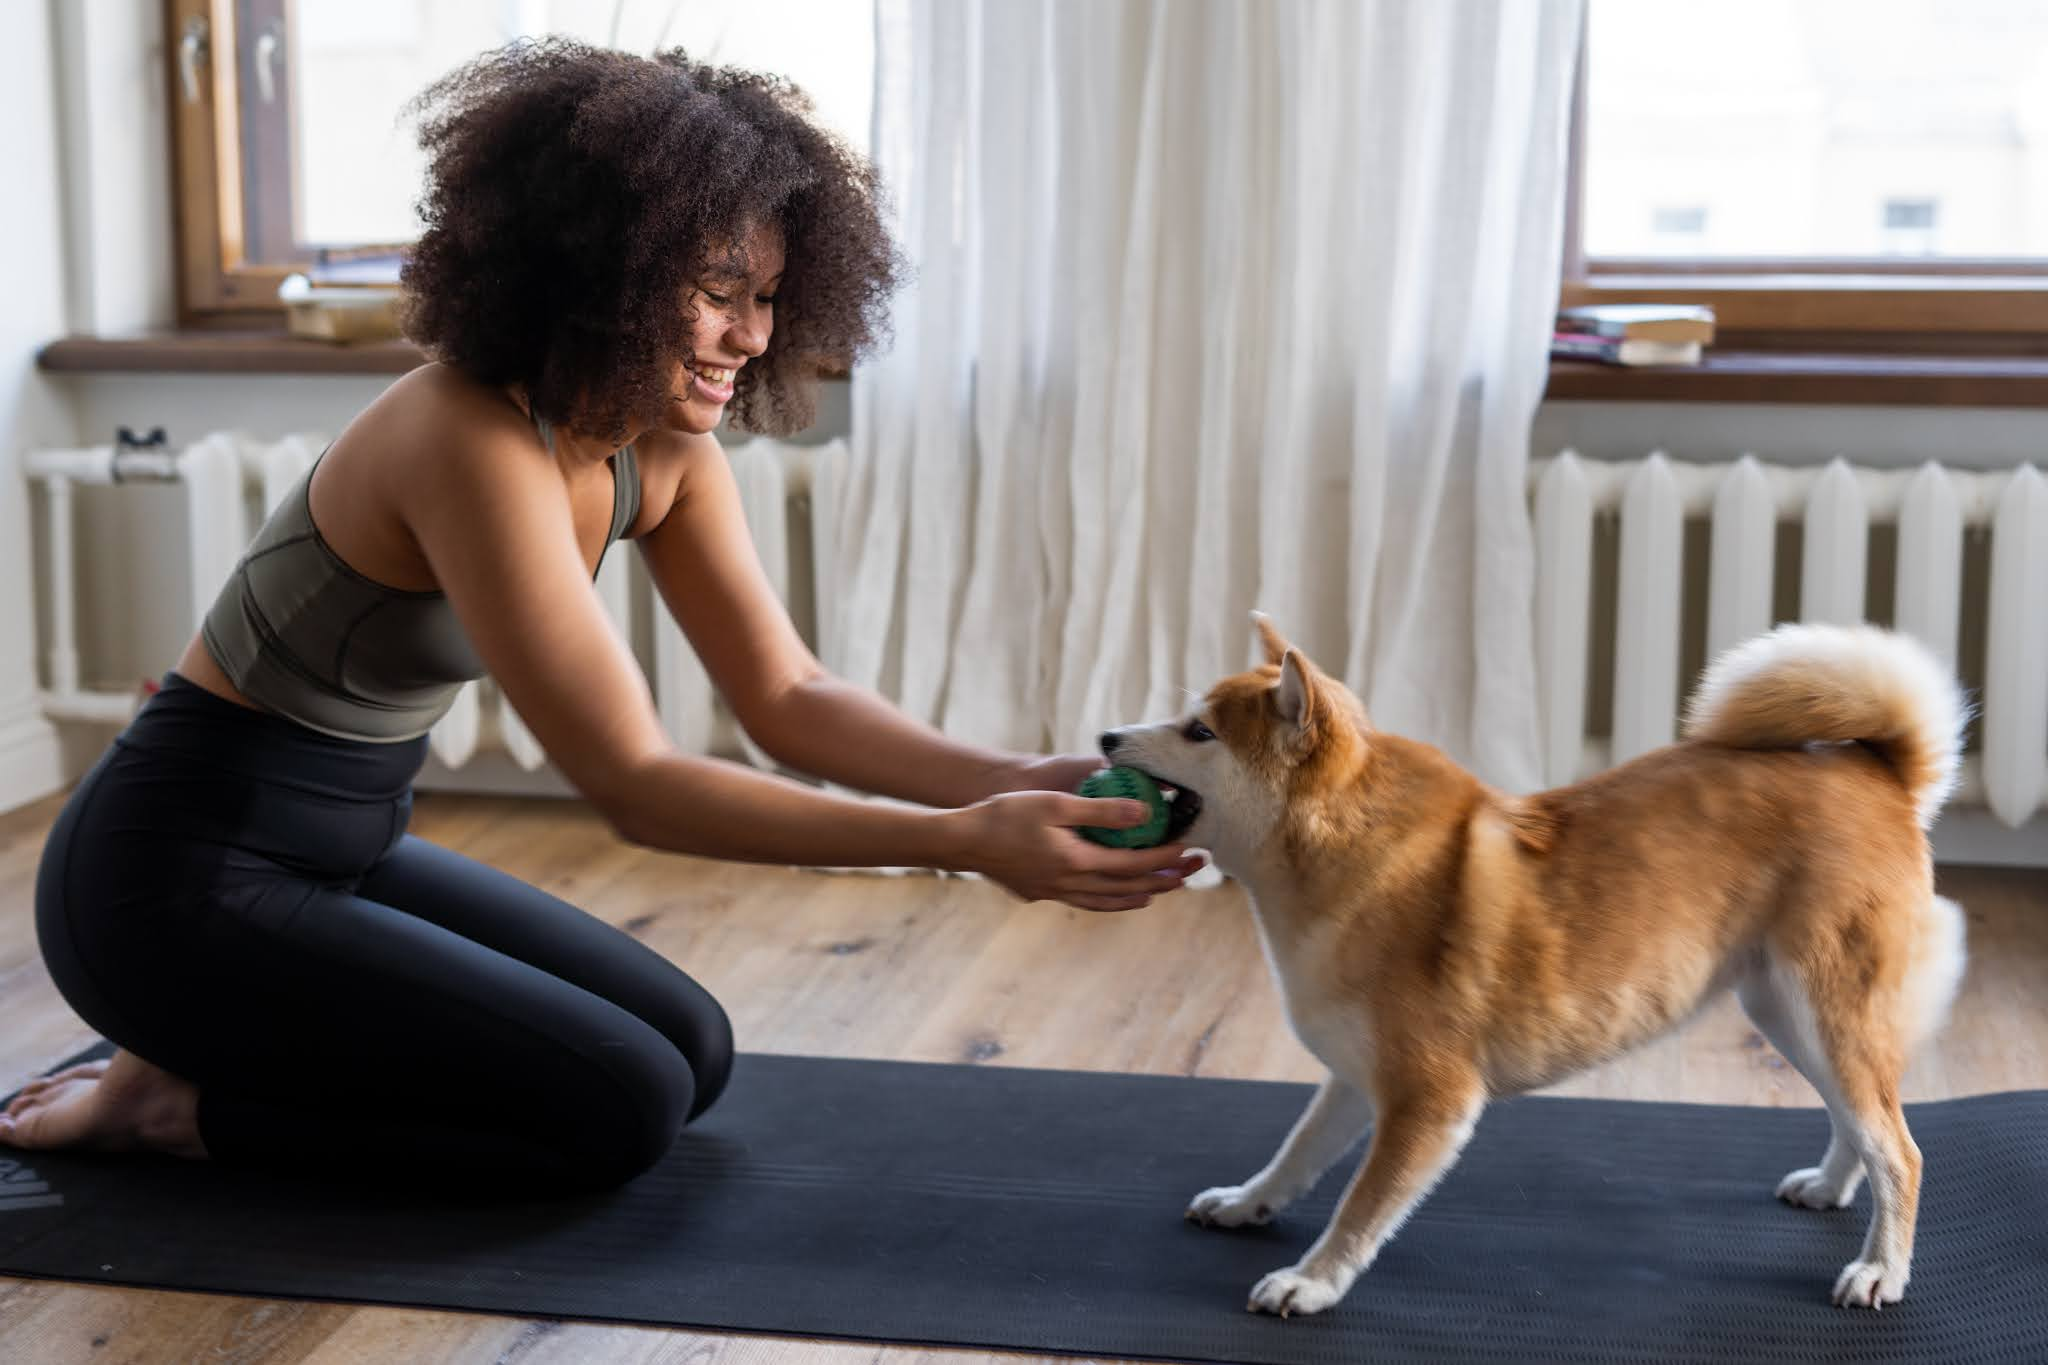 woman doing yoga and being interrupted by her cute dog wanting to play